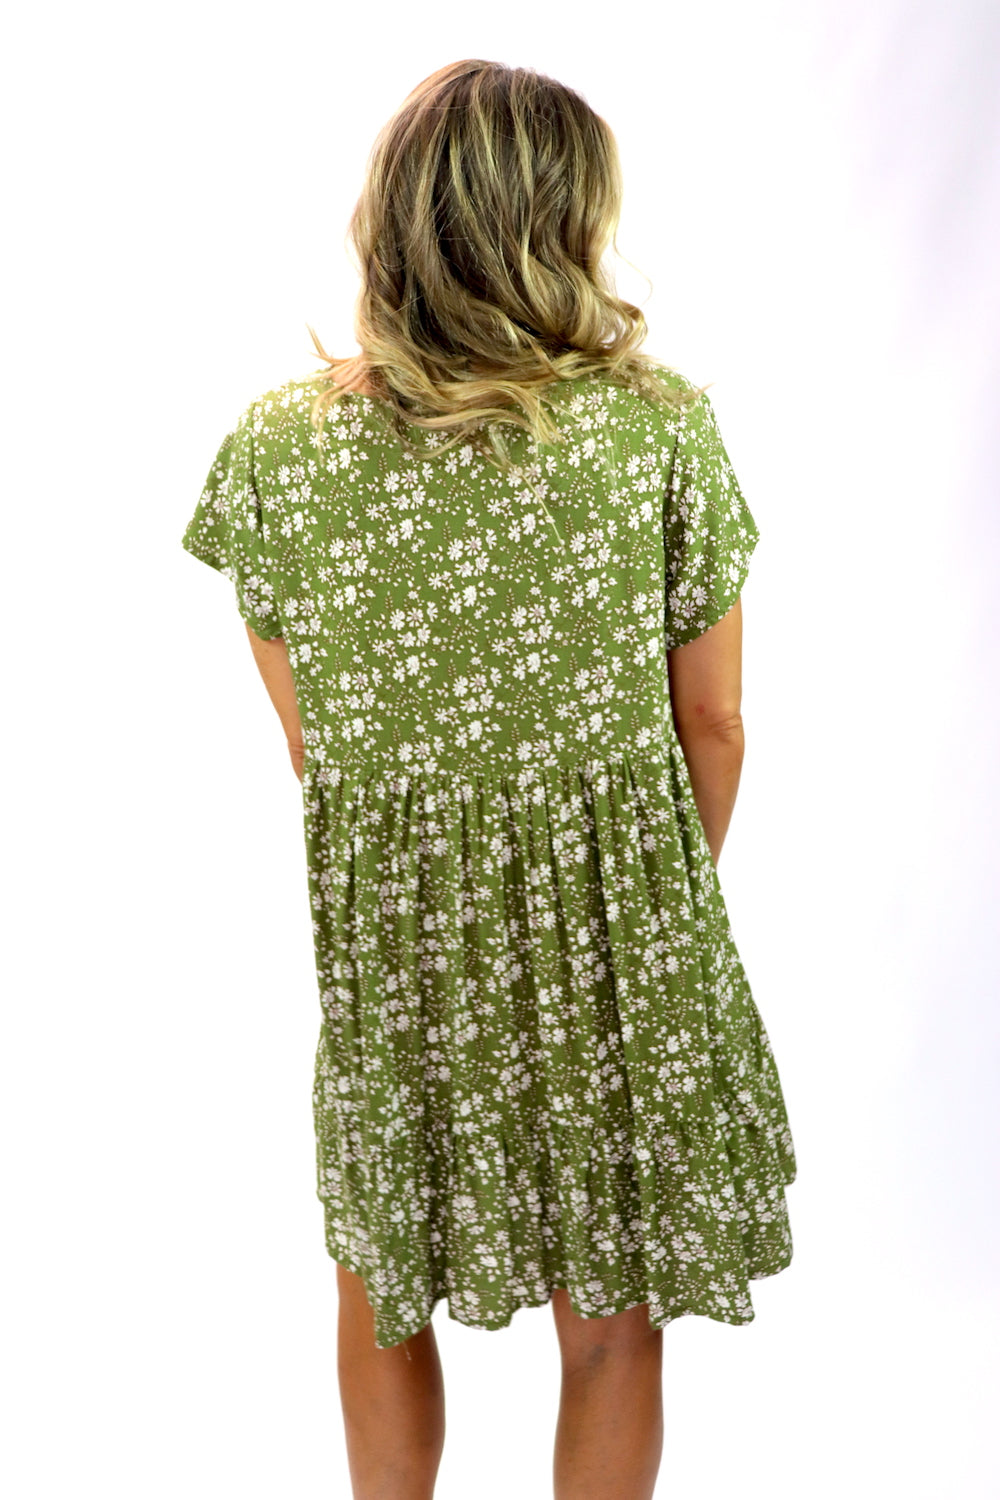 Baby Doll Button Up Dress In Olive Flower